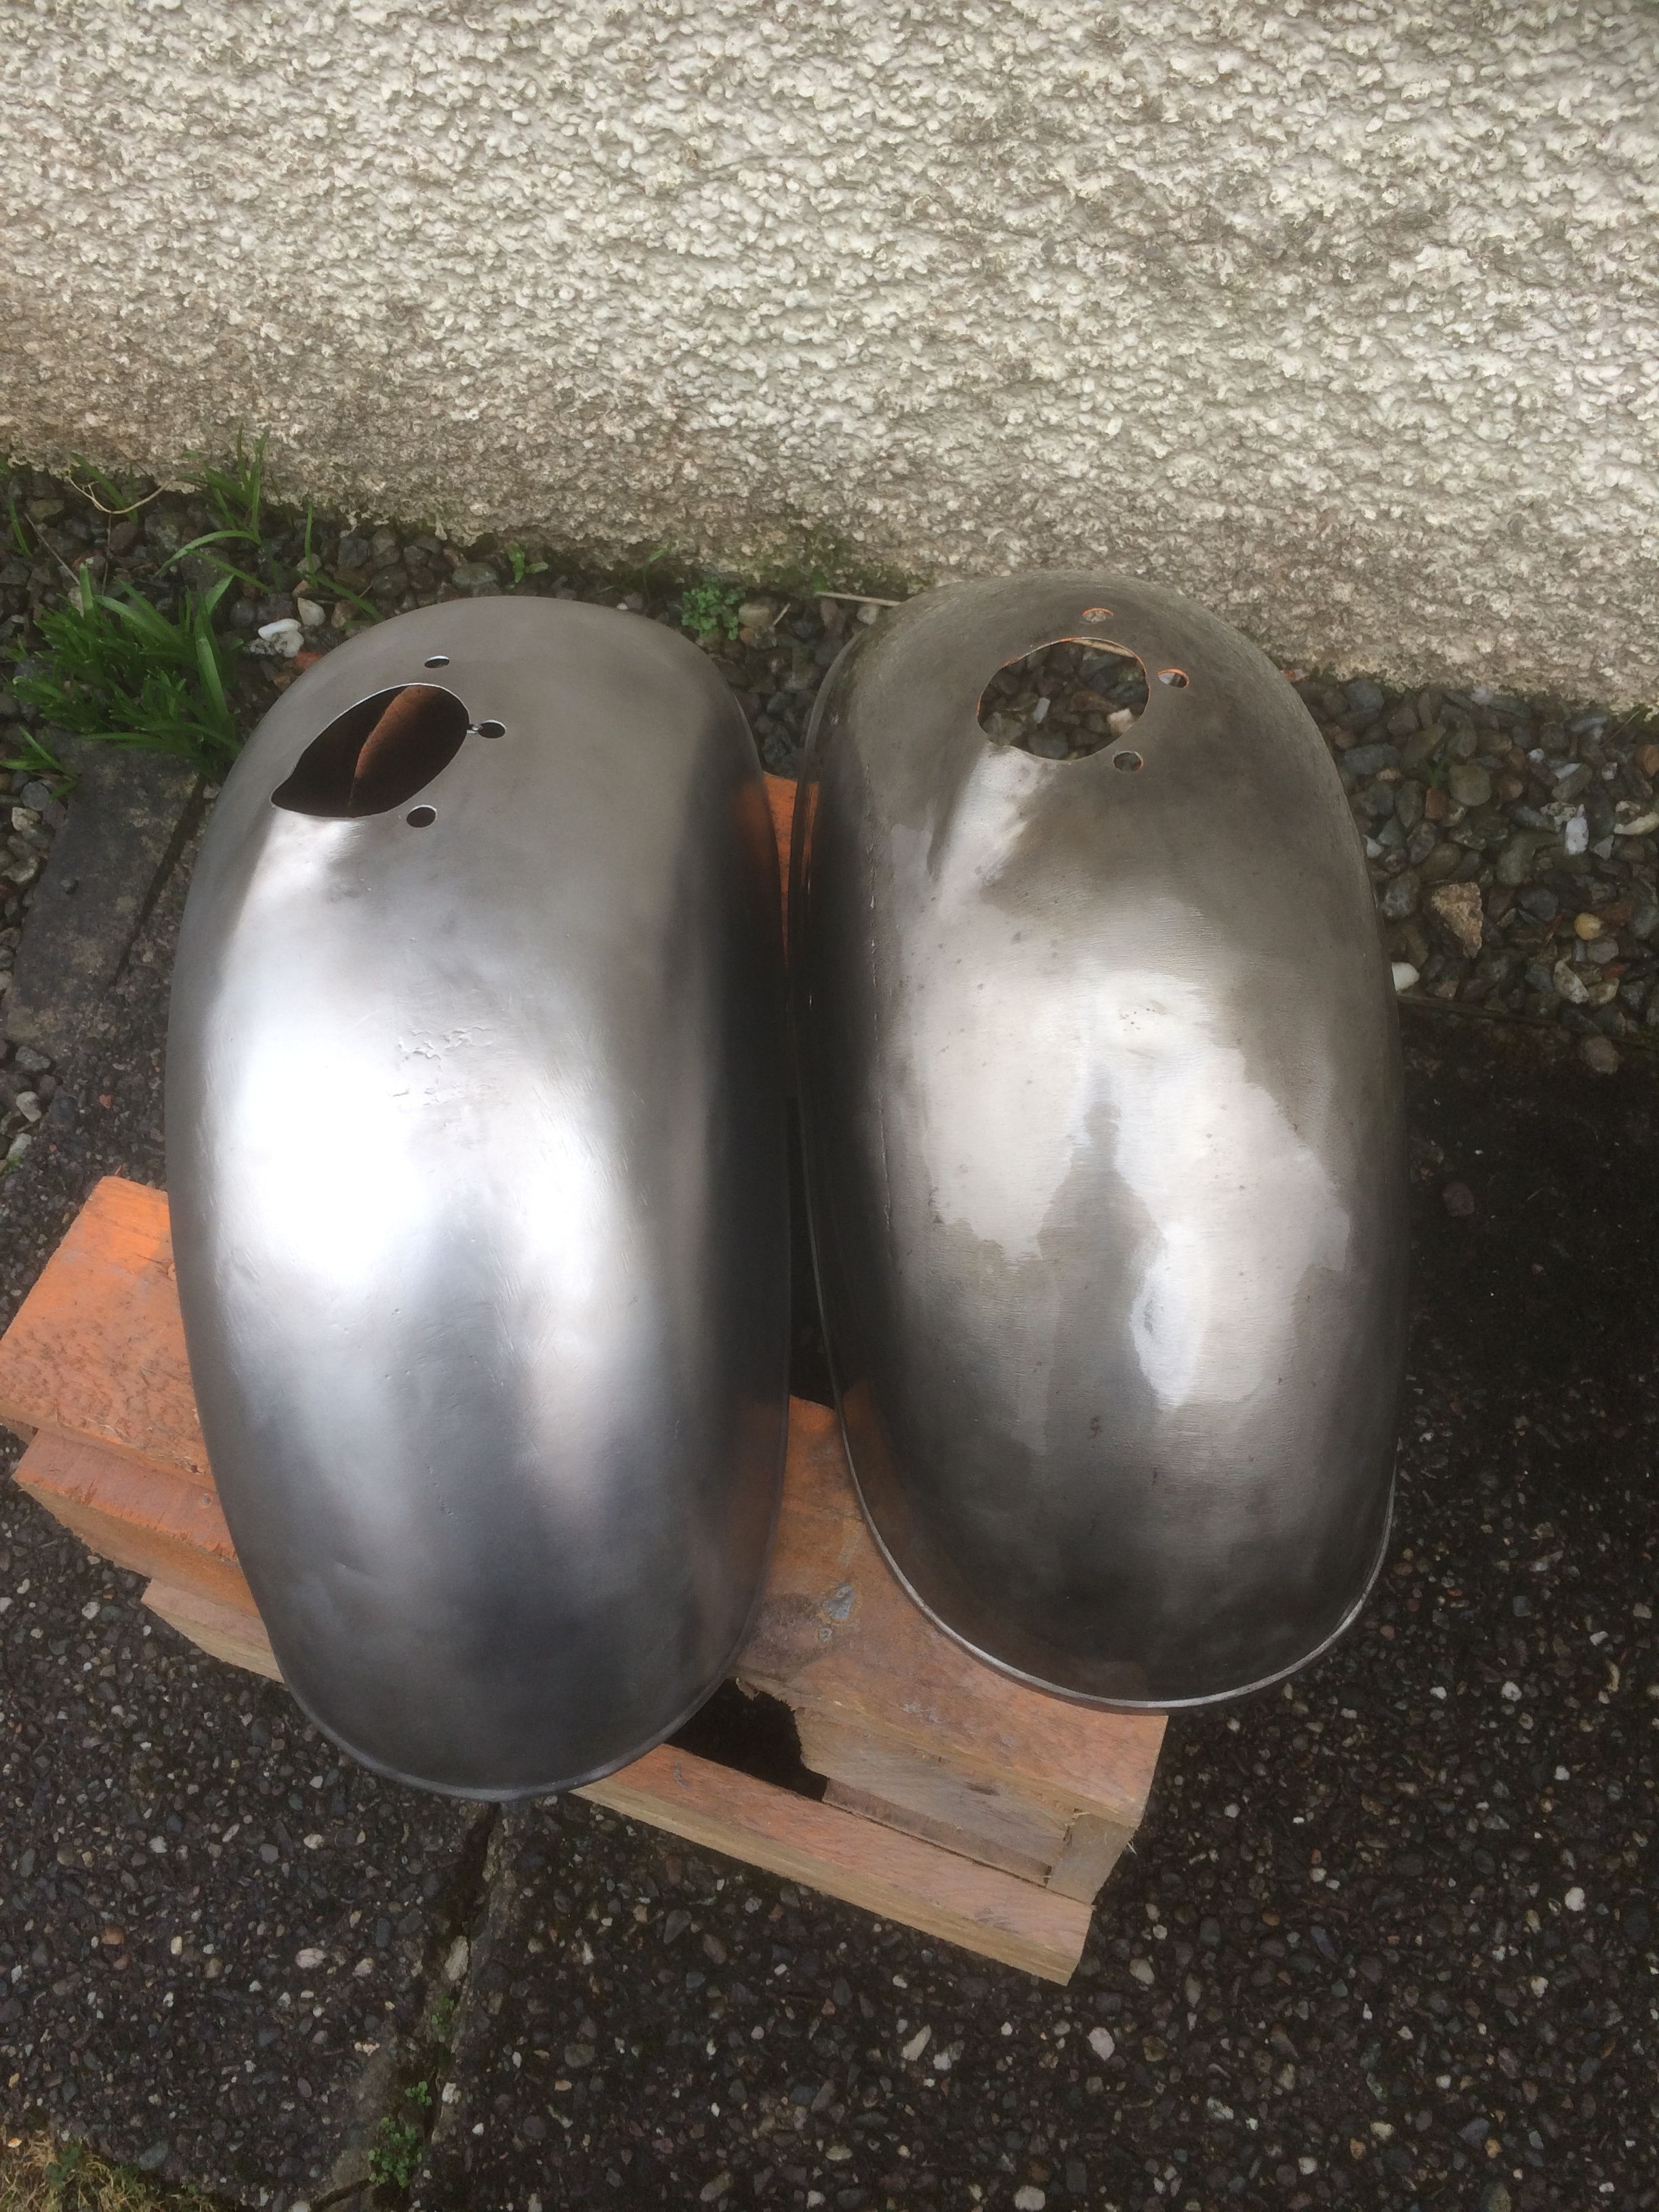 The Mudguard On The Left Is Bare Metal The Mudguard On The Right Has Had The Clear Powder Coat